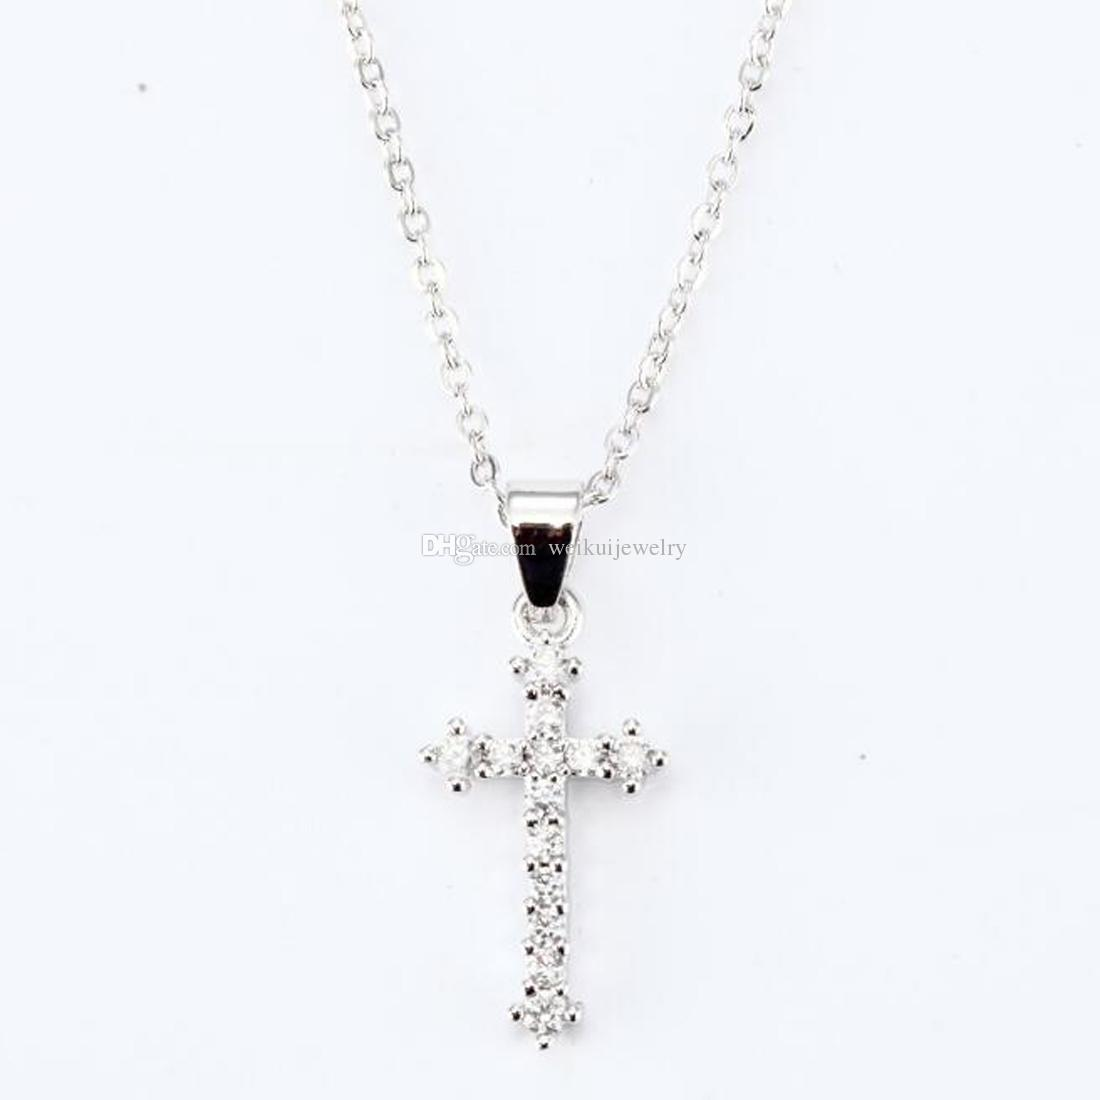 Wholesale Fashion Simple Stainless Steel Silver Gold Diamond Cross